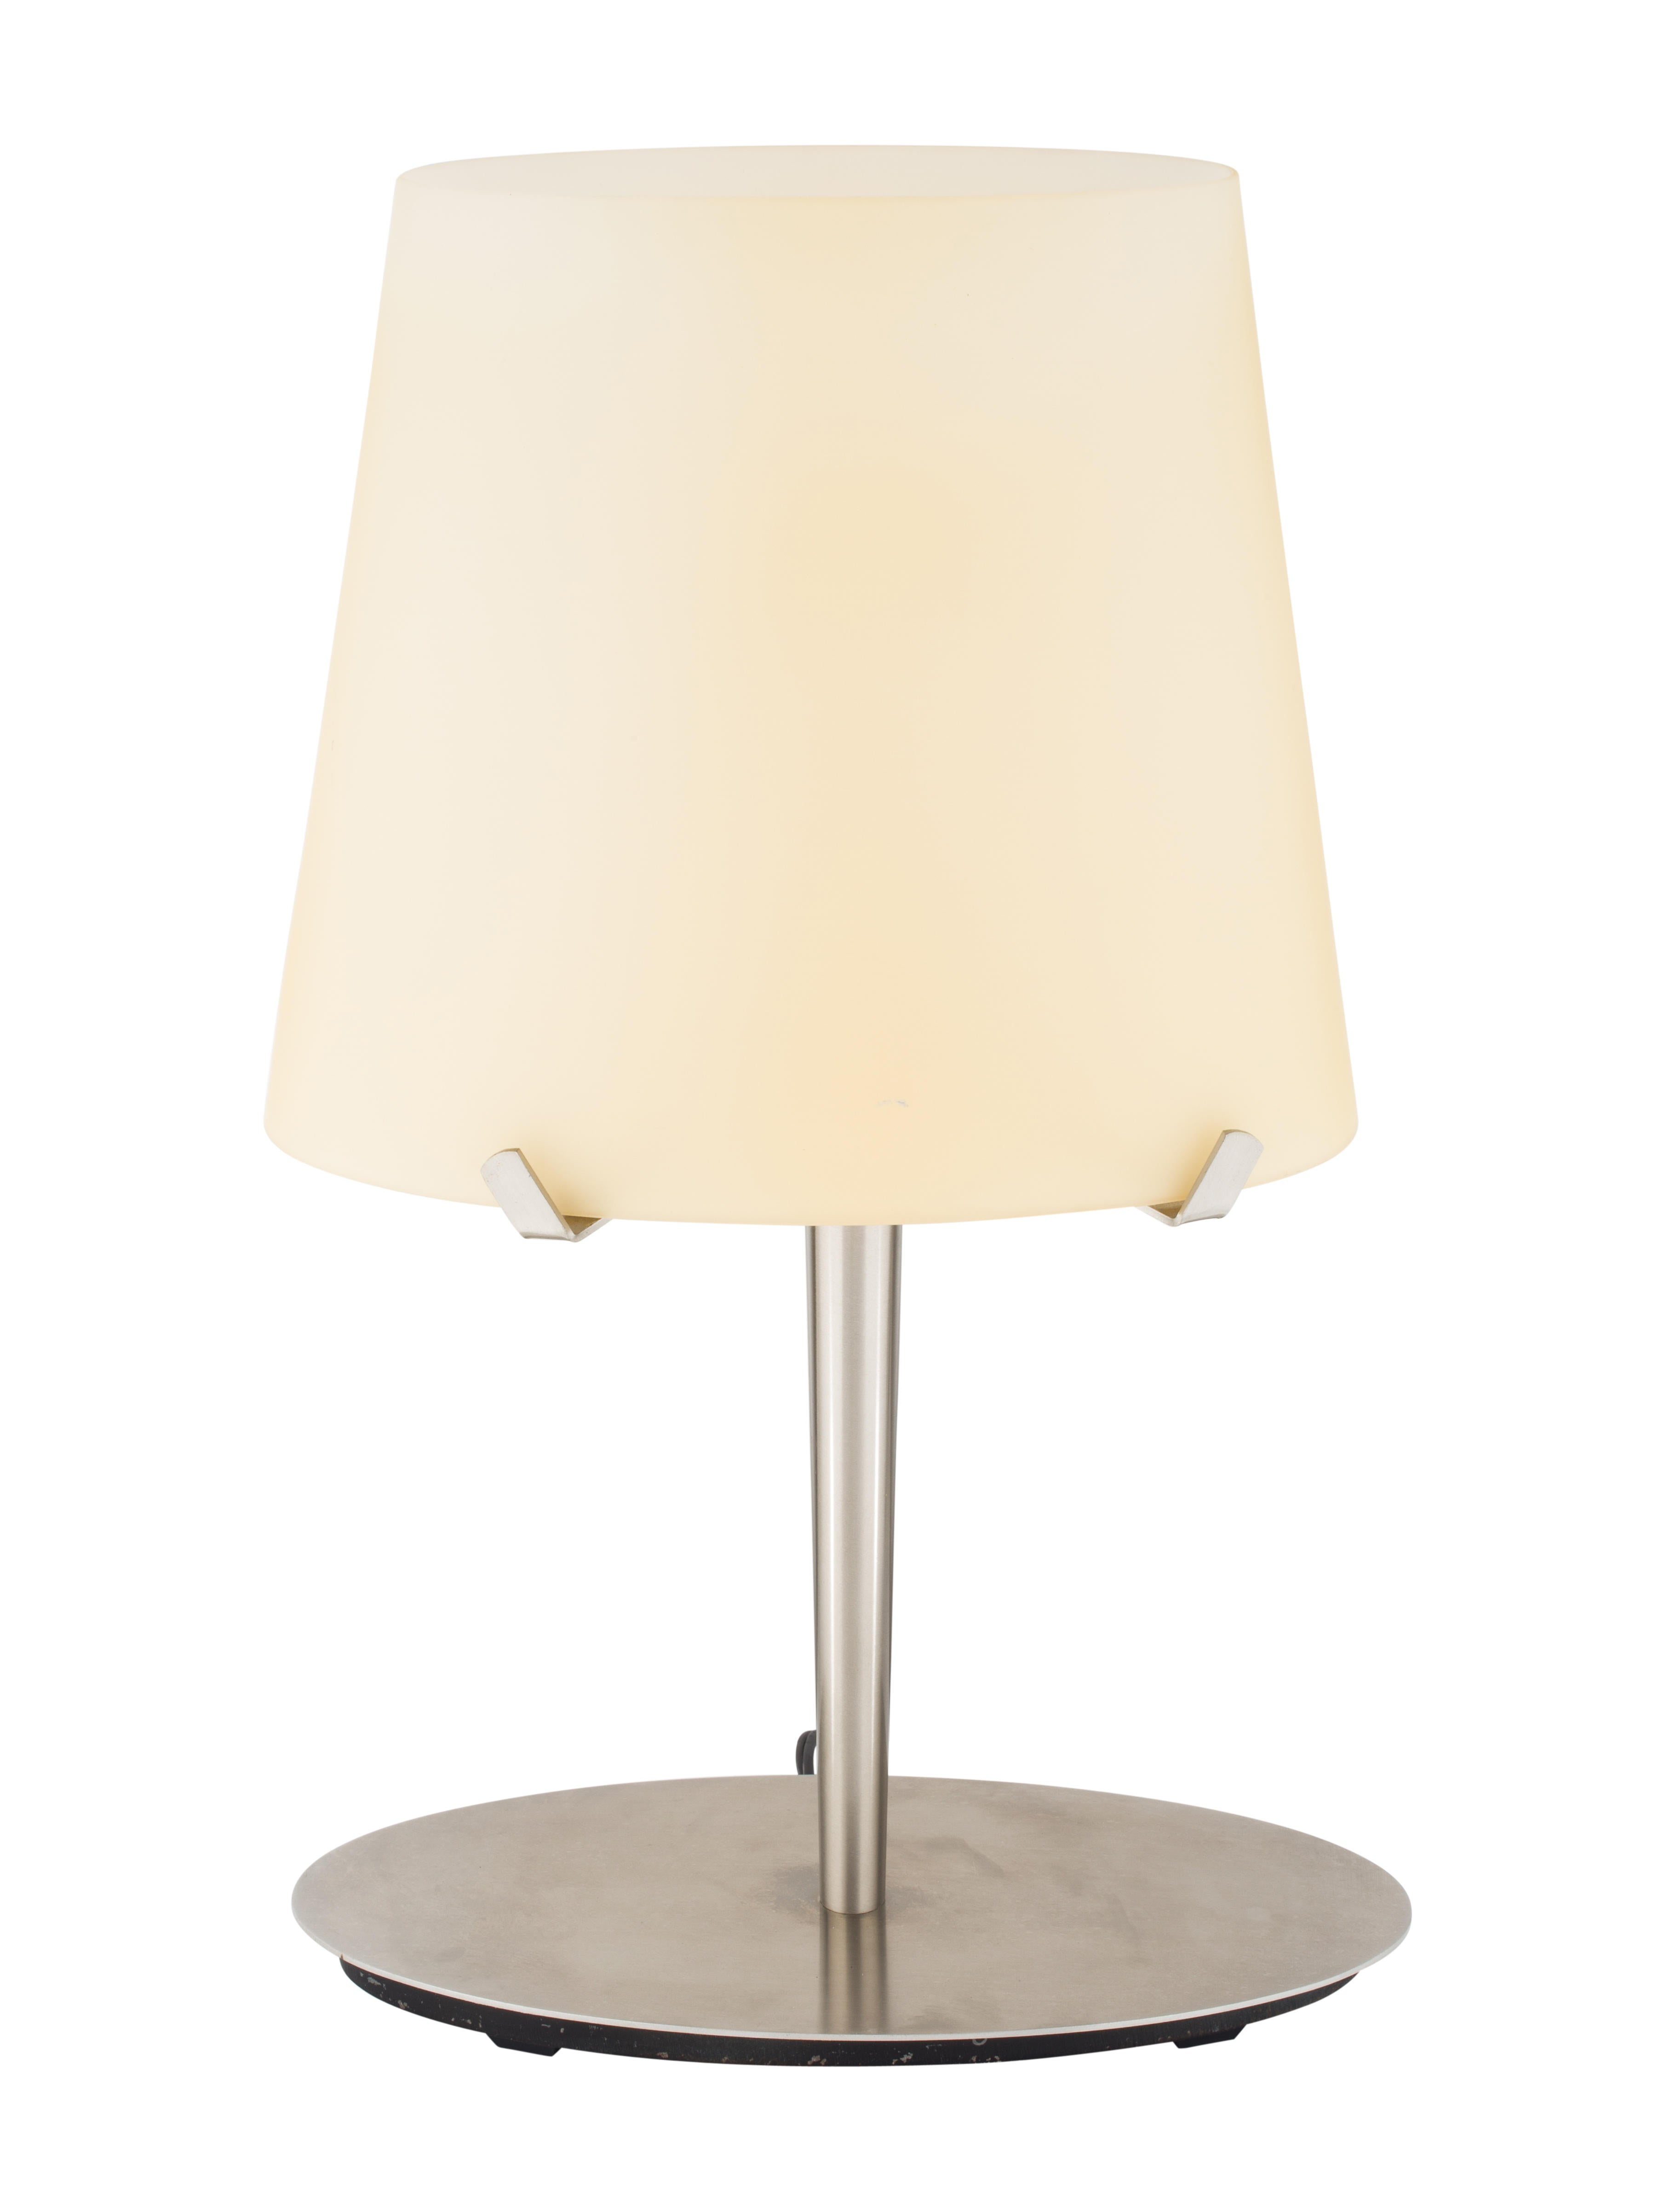 Brushed Steel Frosted Glass Table Lamp Lighting Lghti20393